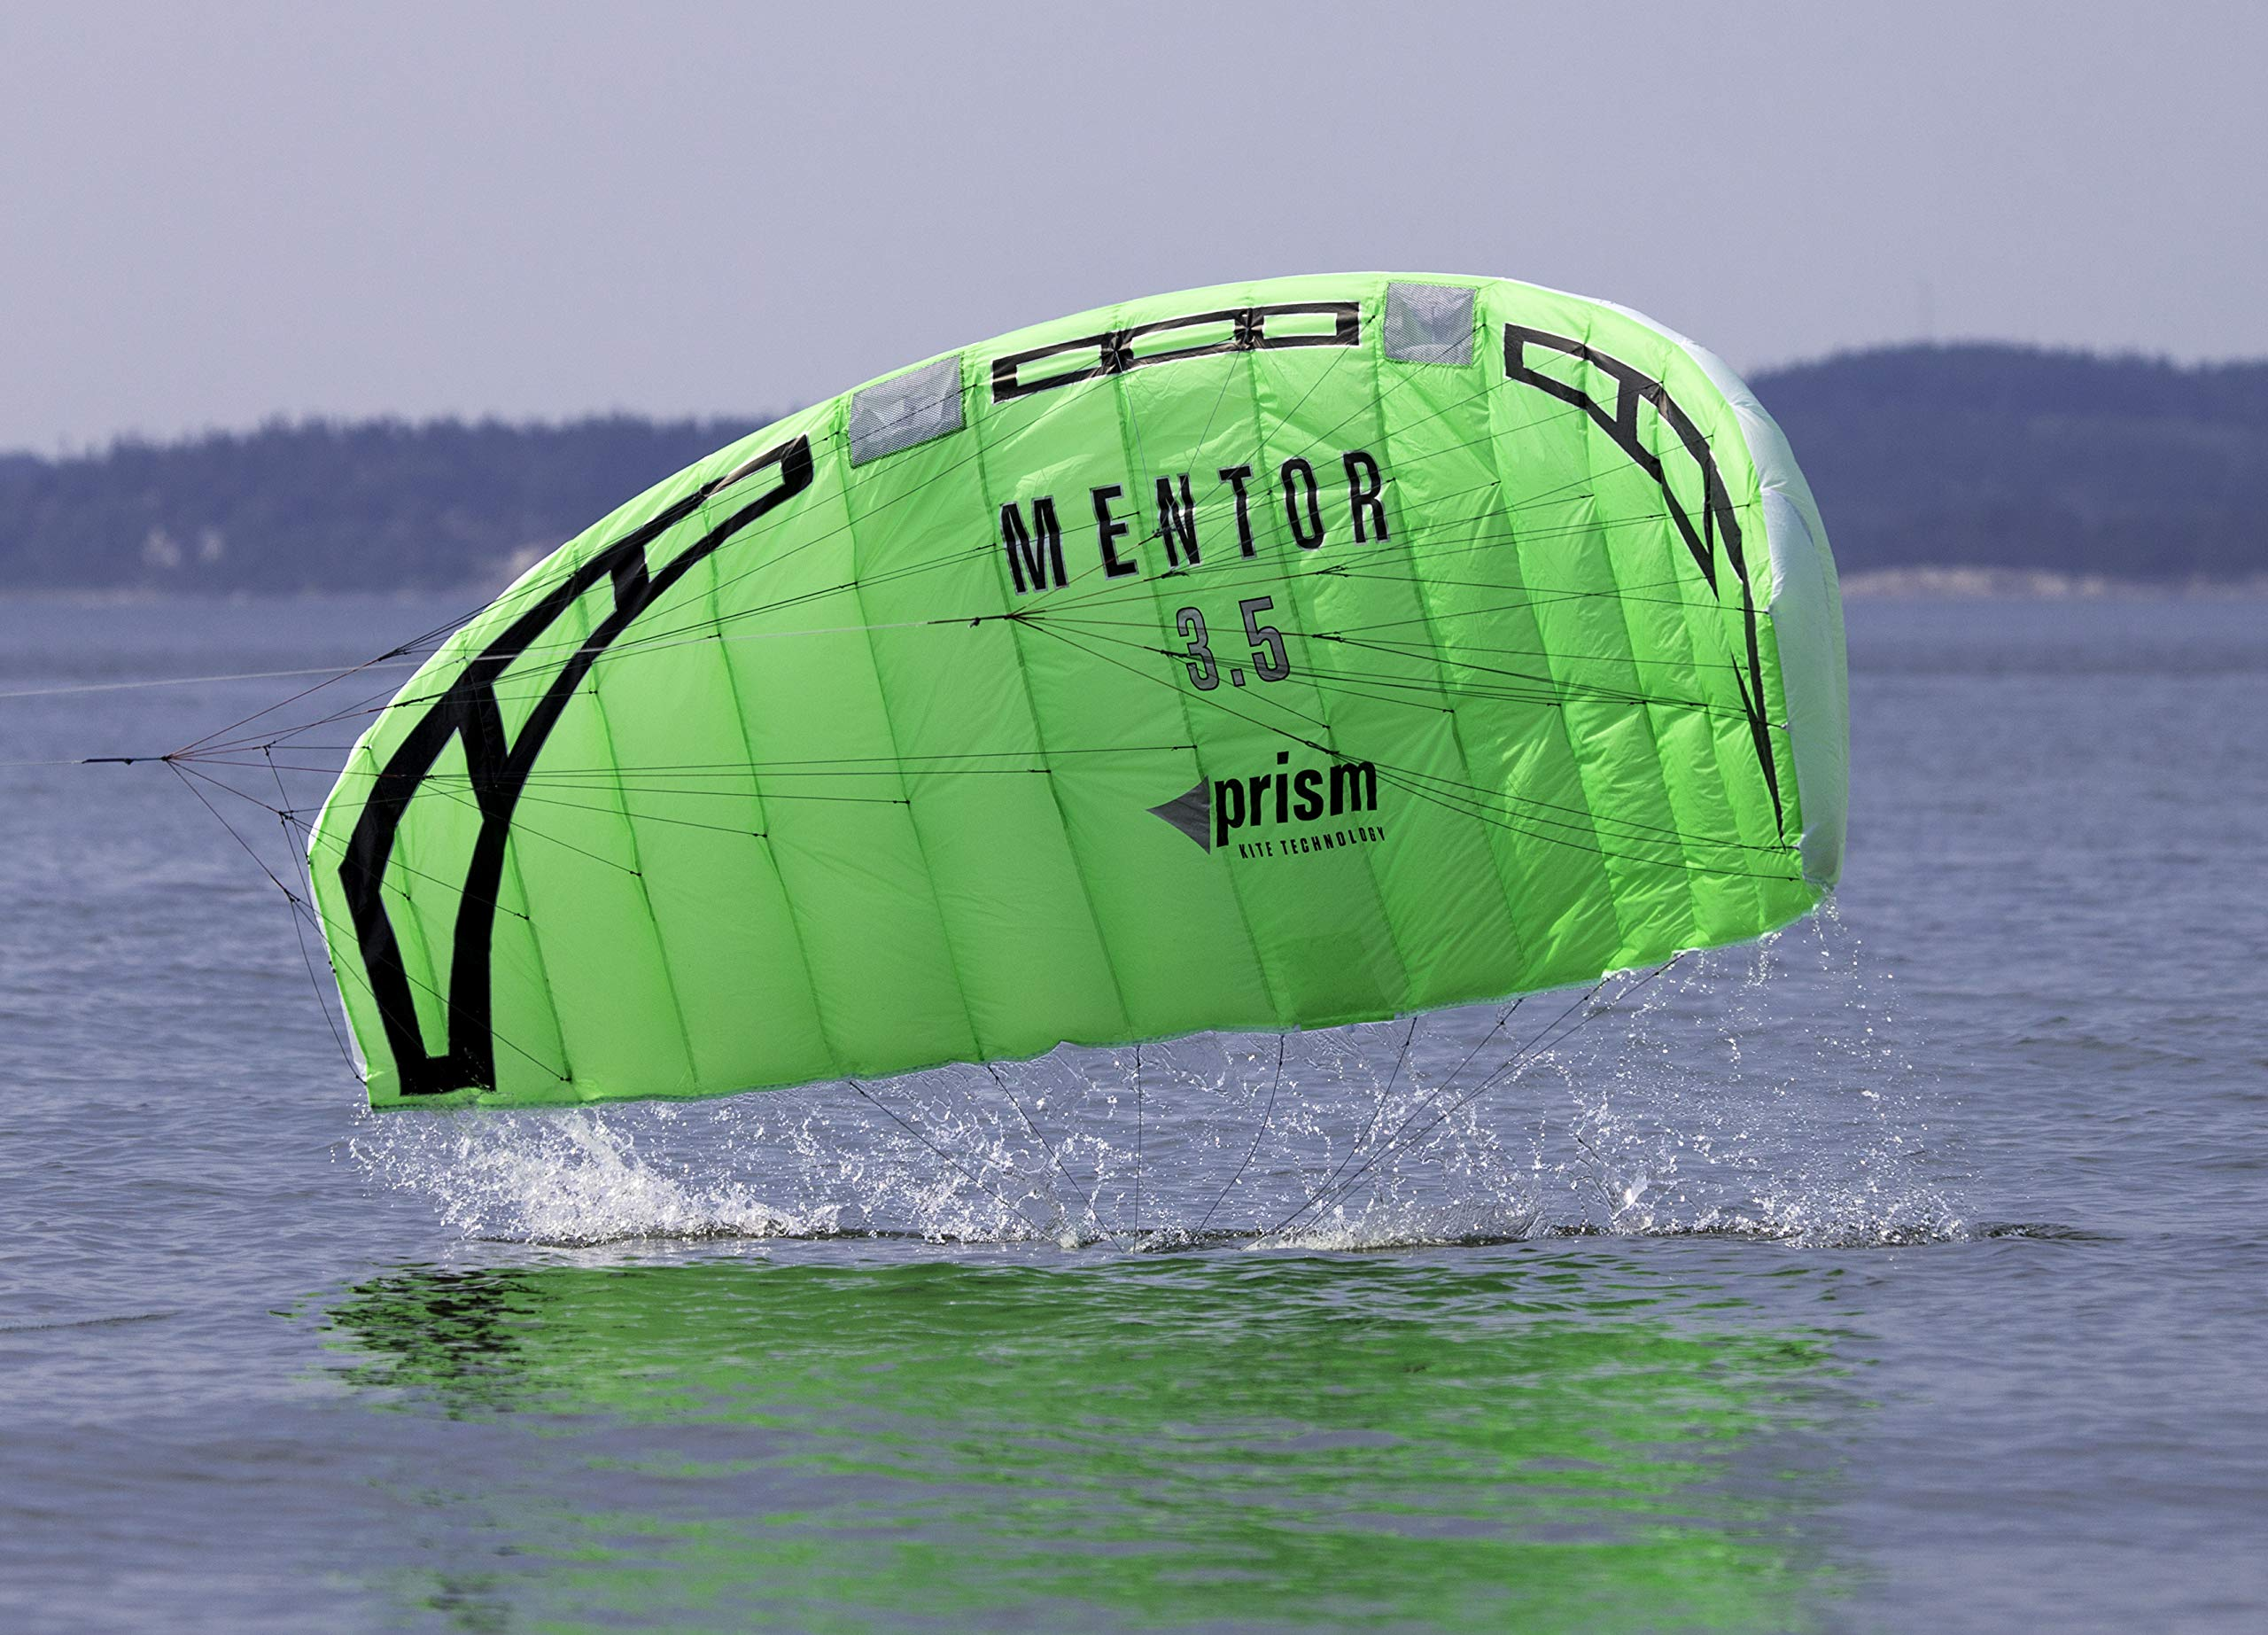 Prism Mentor 2.5m Water-relaunchable Three-line Power Kite Ready to Fly with Control bar, Ground Stake and Quick Release Safety Leash by Prism Kite Technology (Image #5)